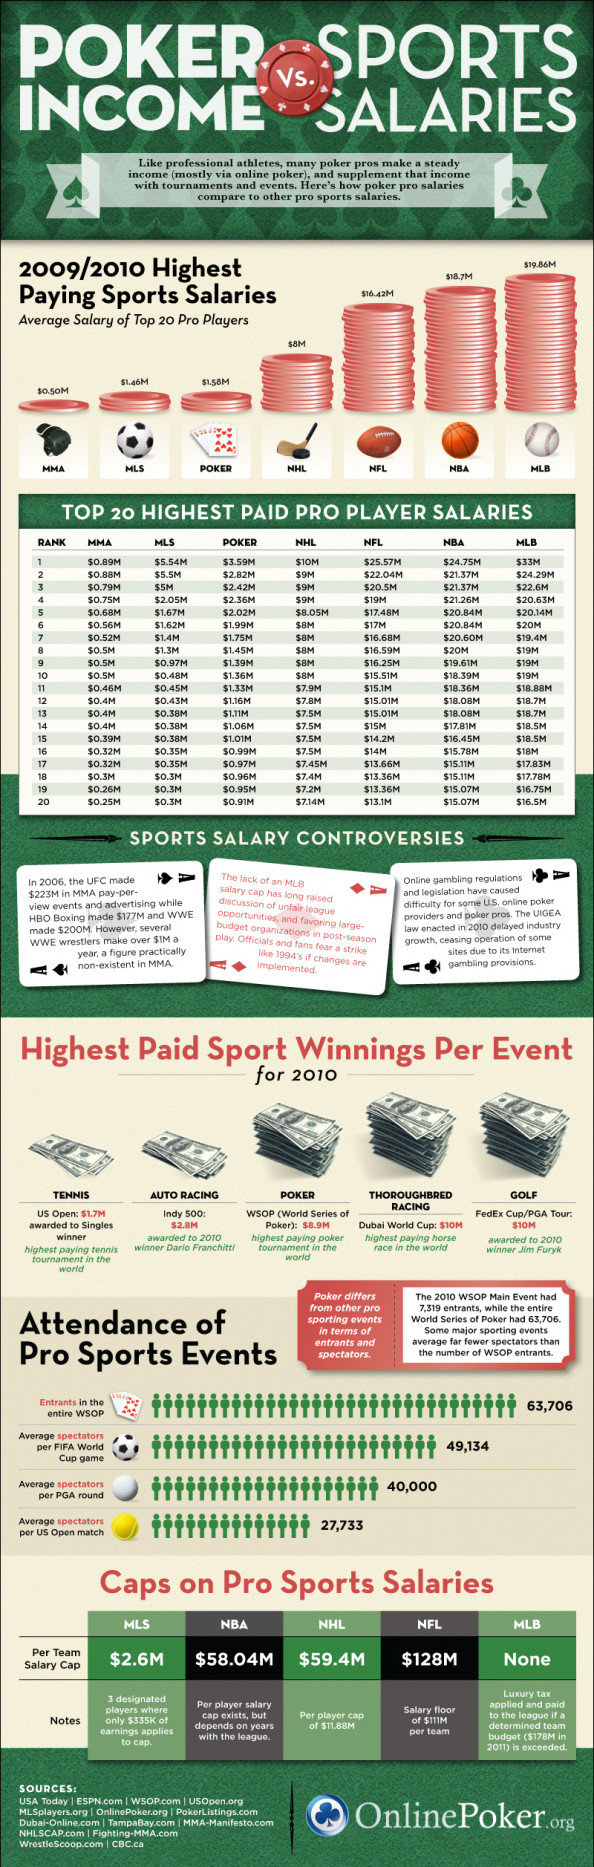 Poker Income vs. Sports Salaries Infographic